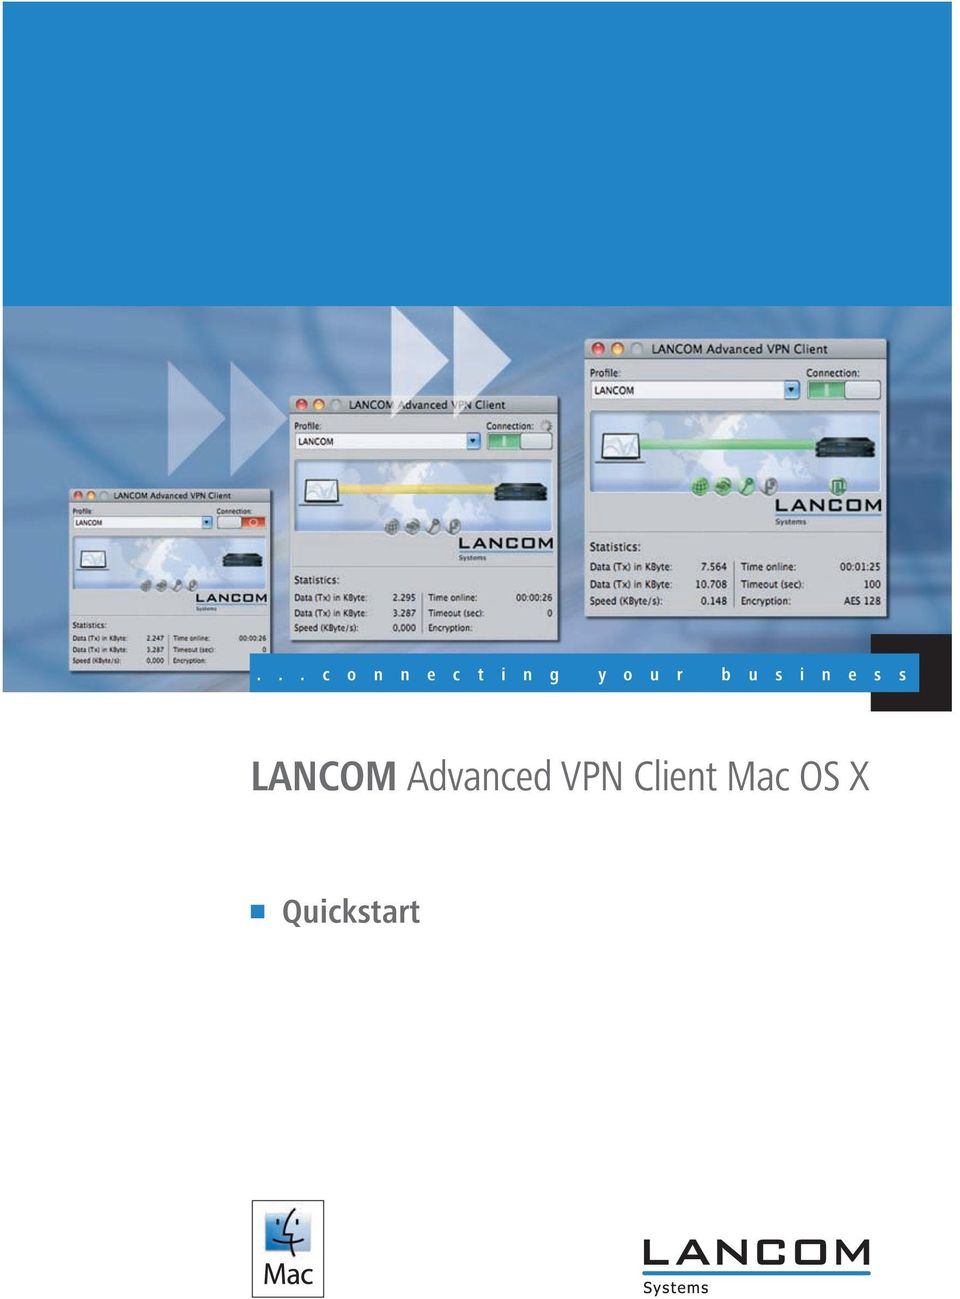 LANCOM Advanced VPN